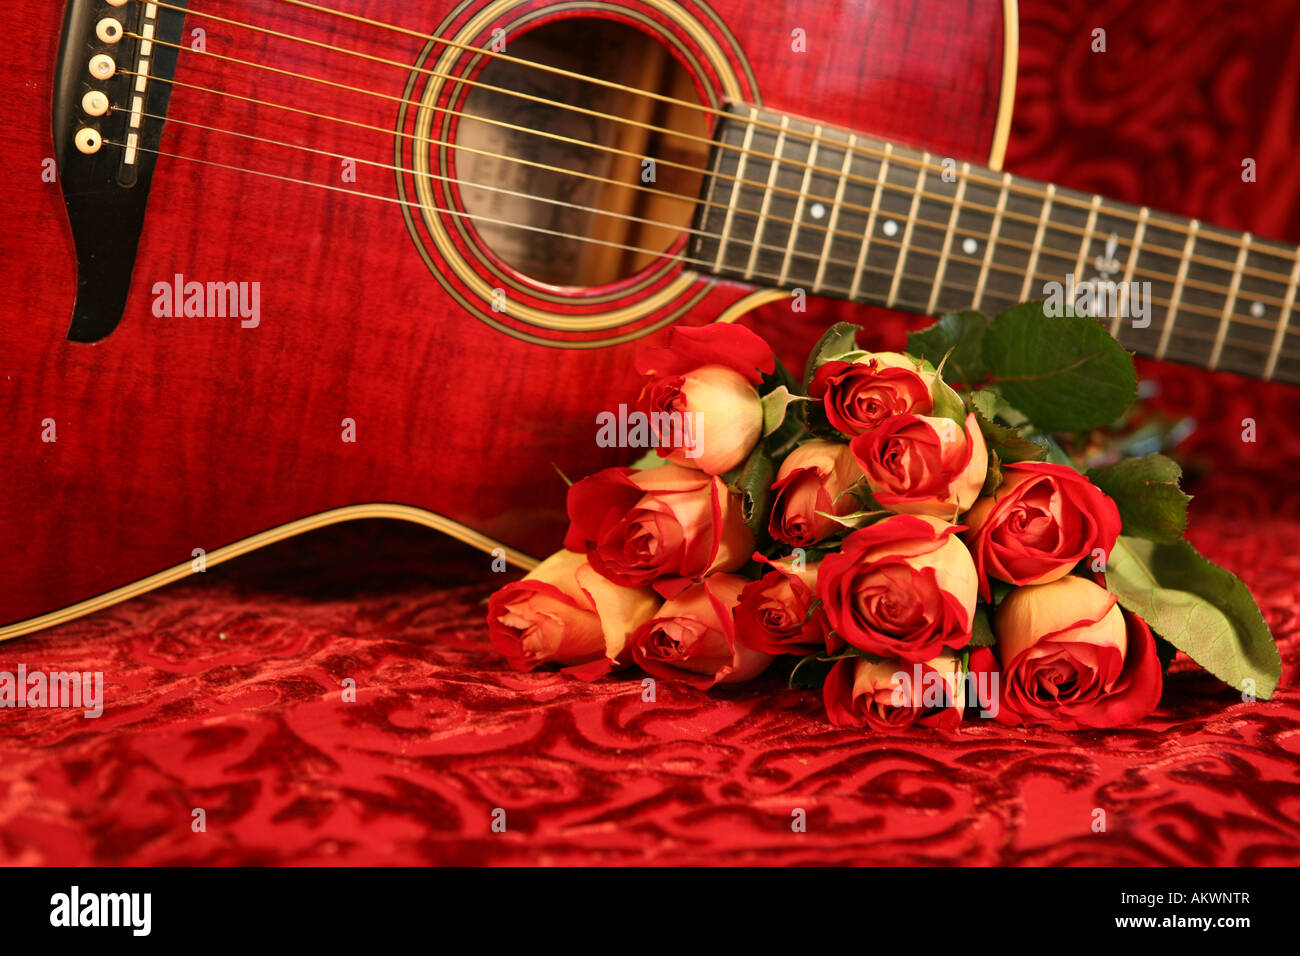 Red Acoustic Guitar With Bouquet Of Roses On Velvet Background